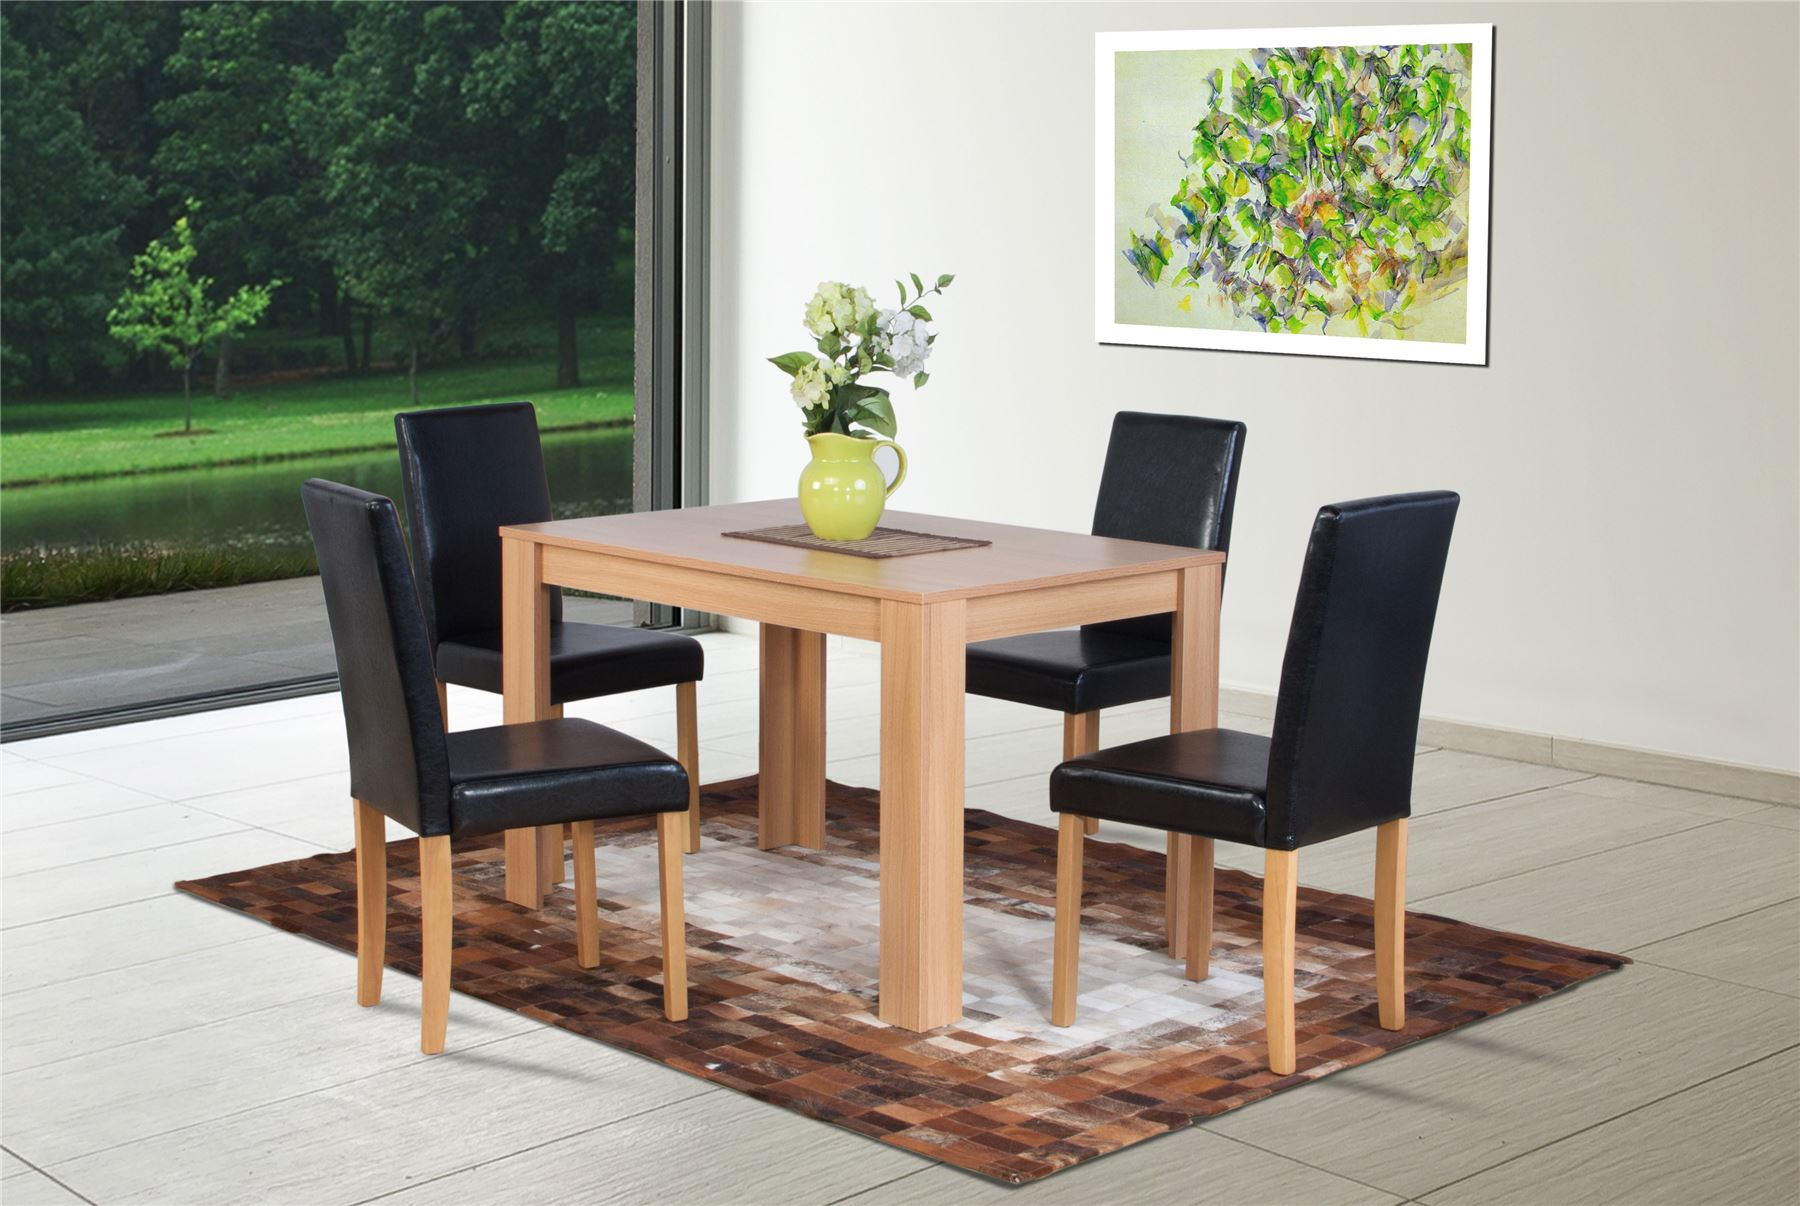 oak effect extending dining table